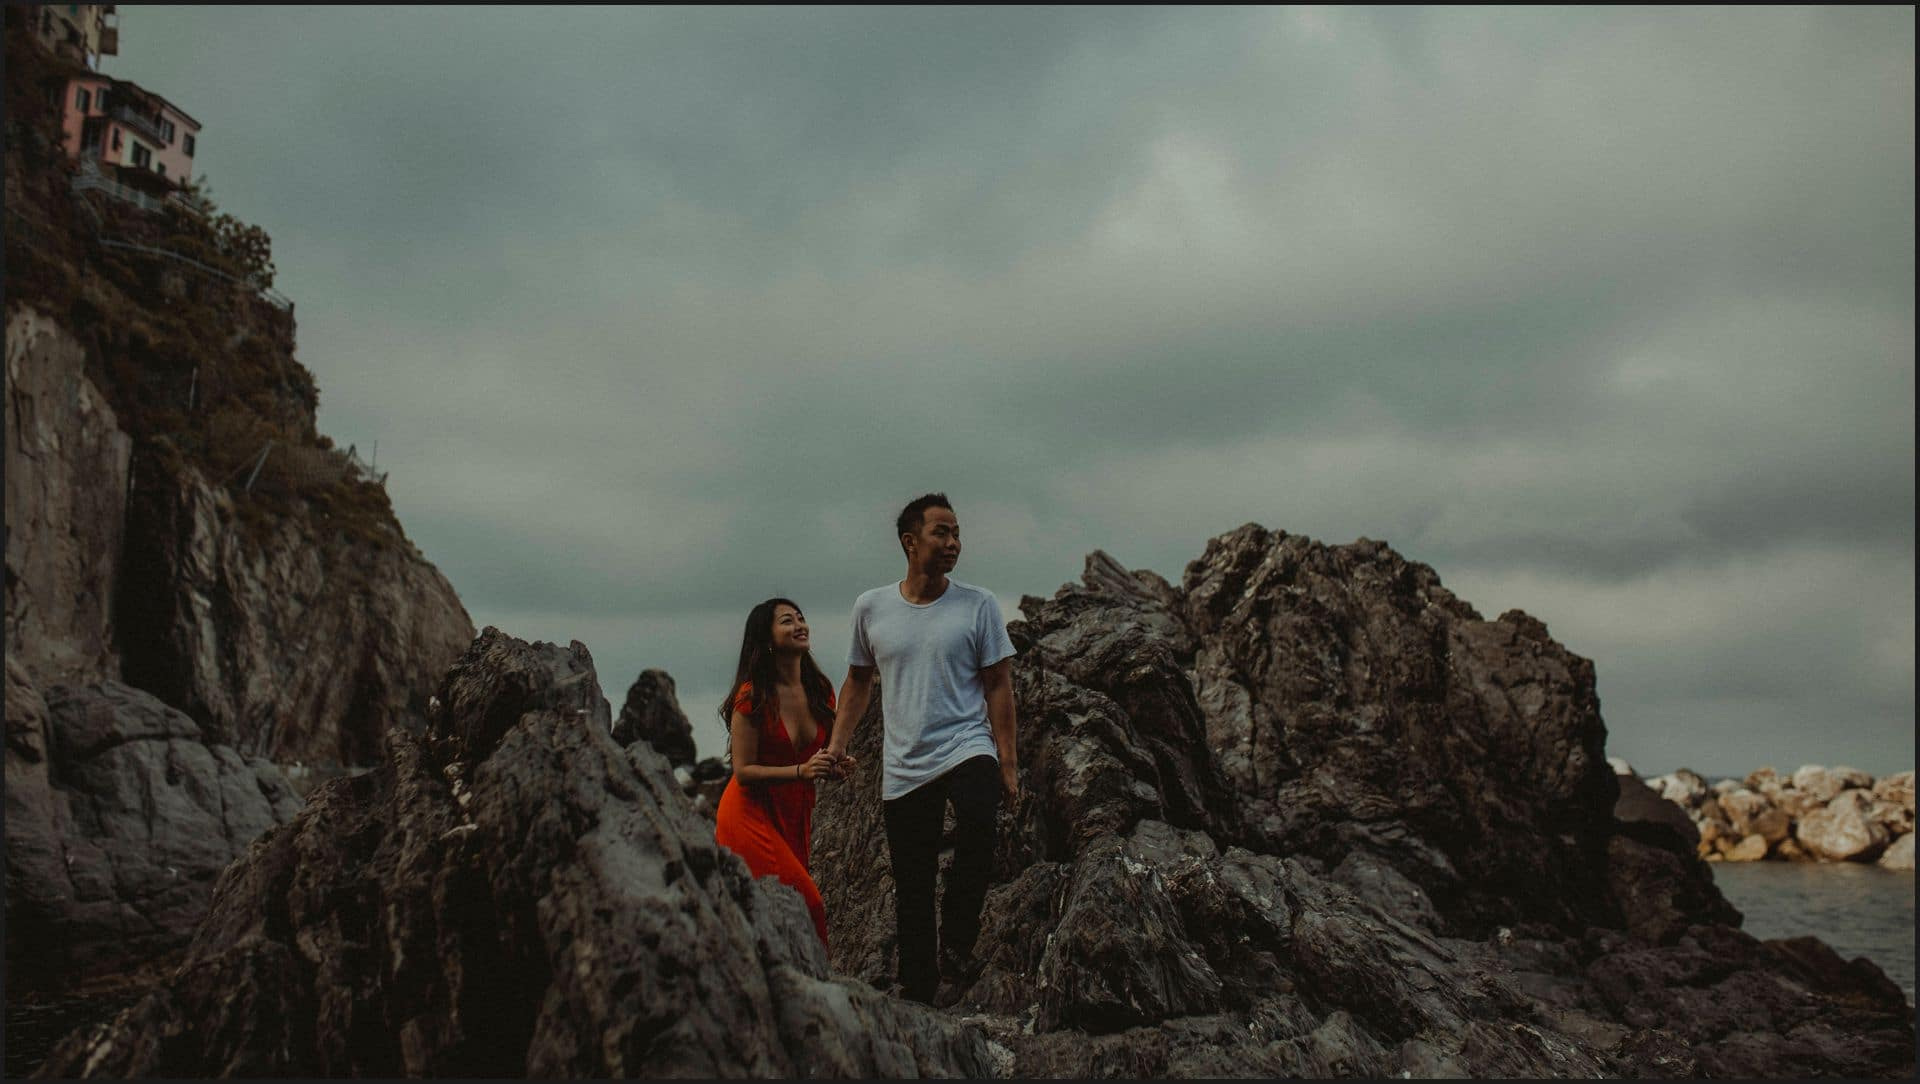 manarola, cinque terre, engagement session, rocks, clouds